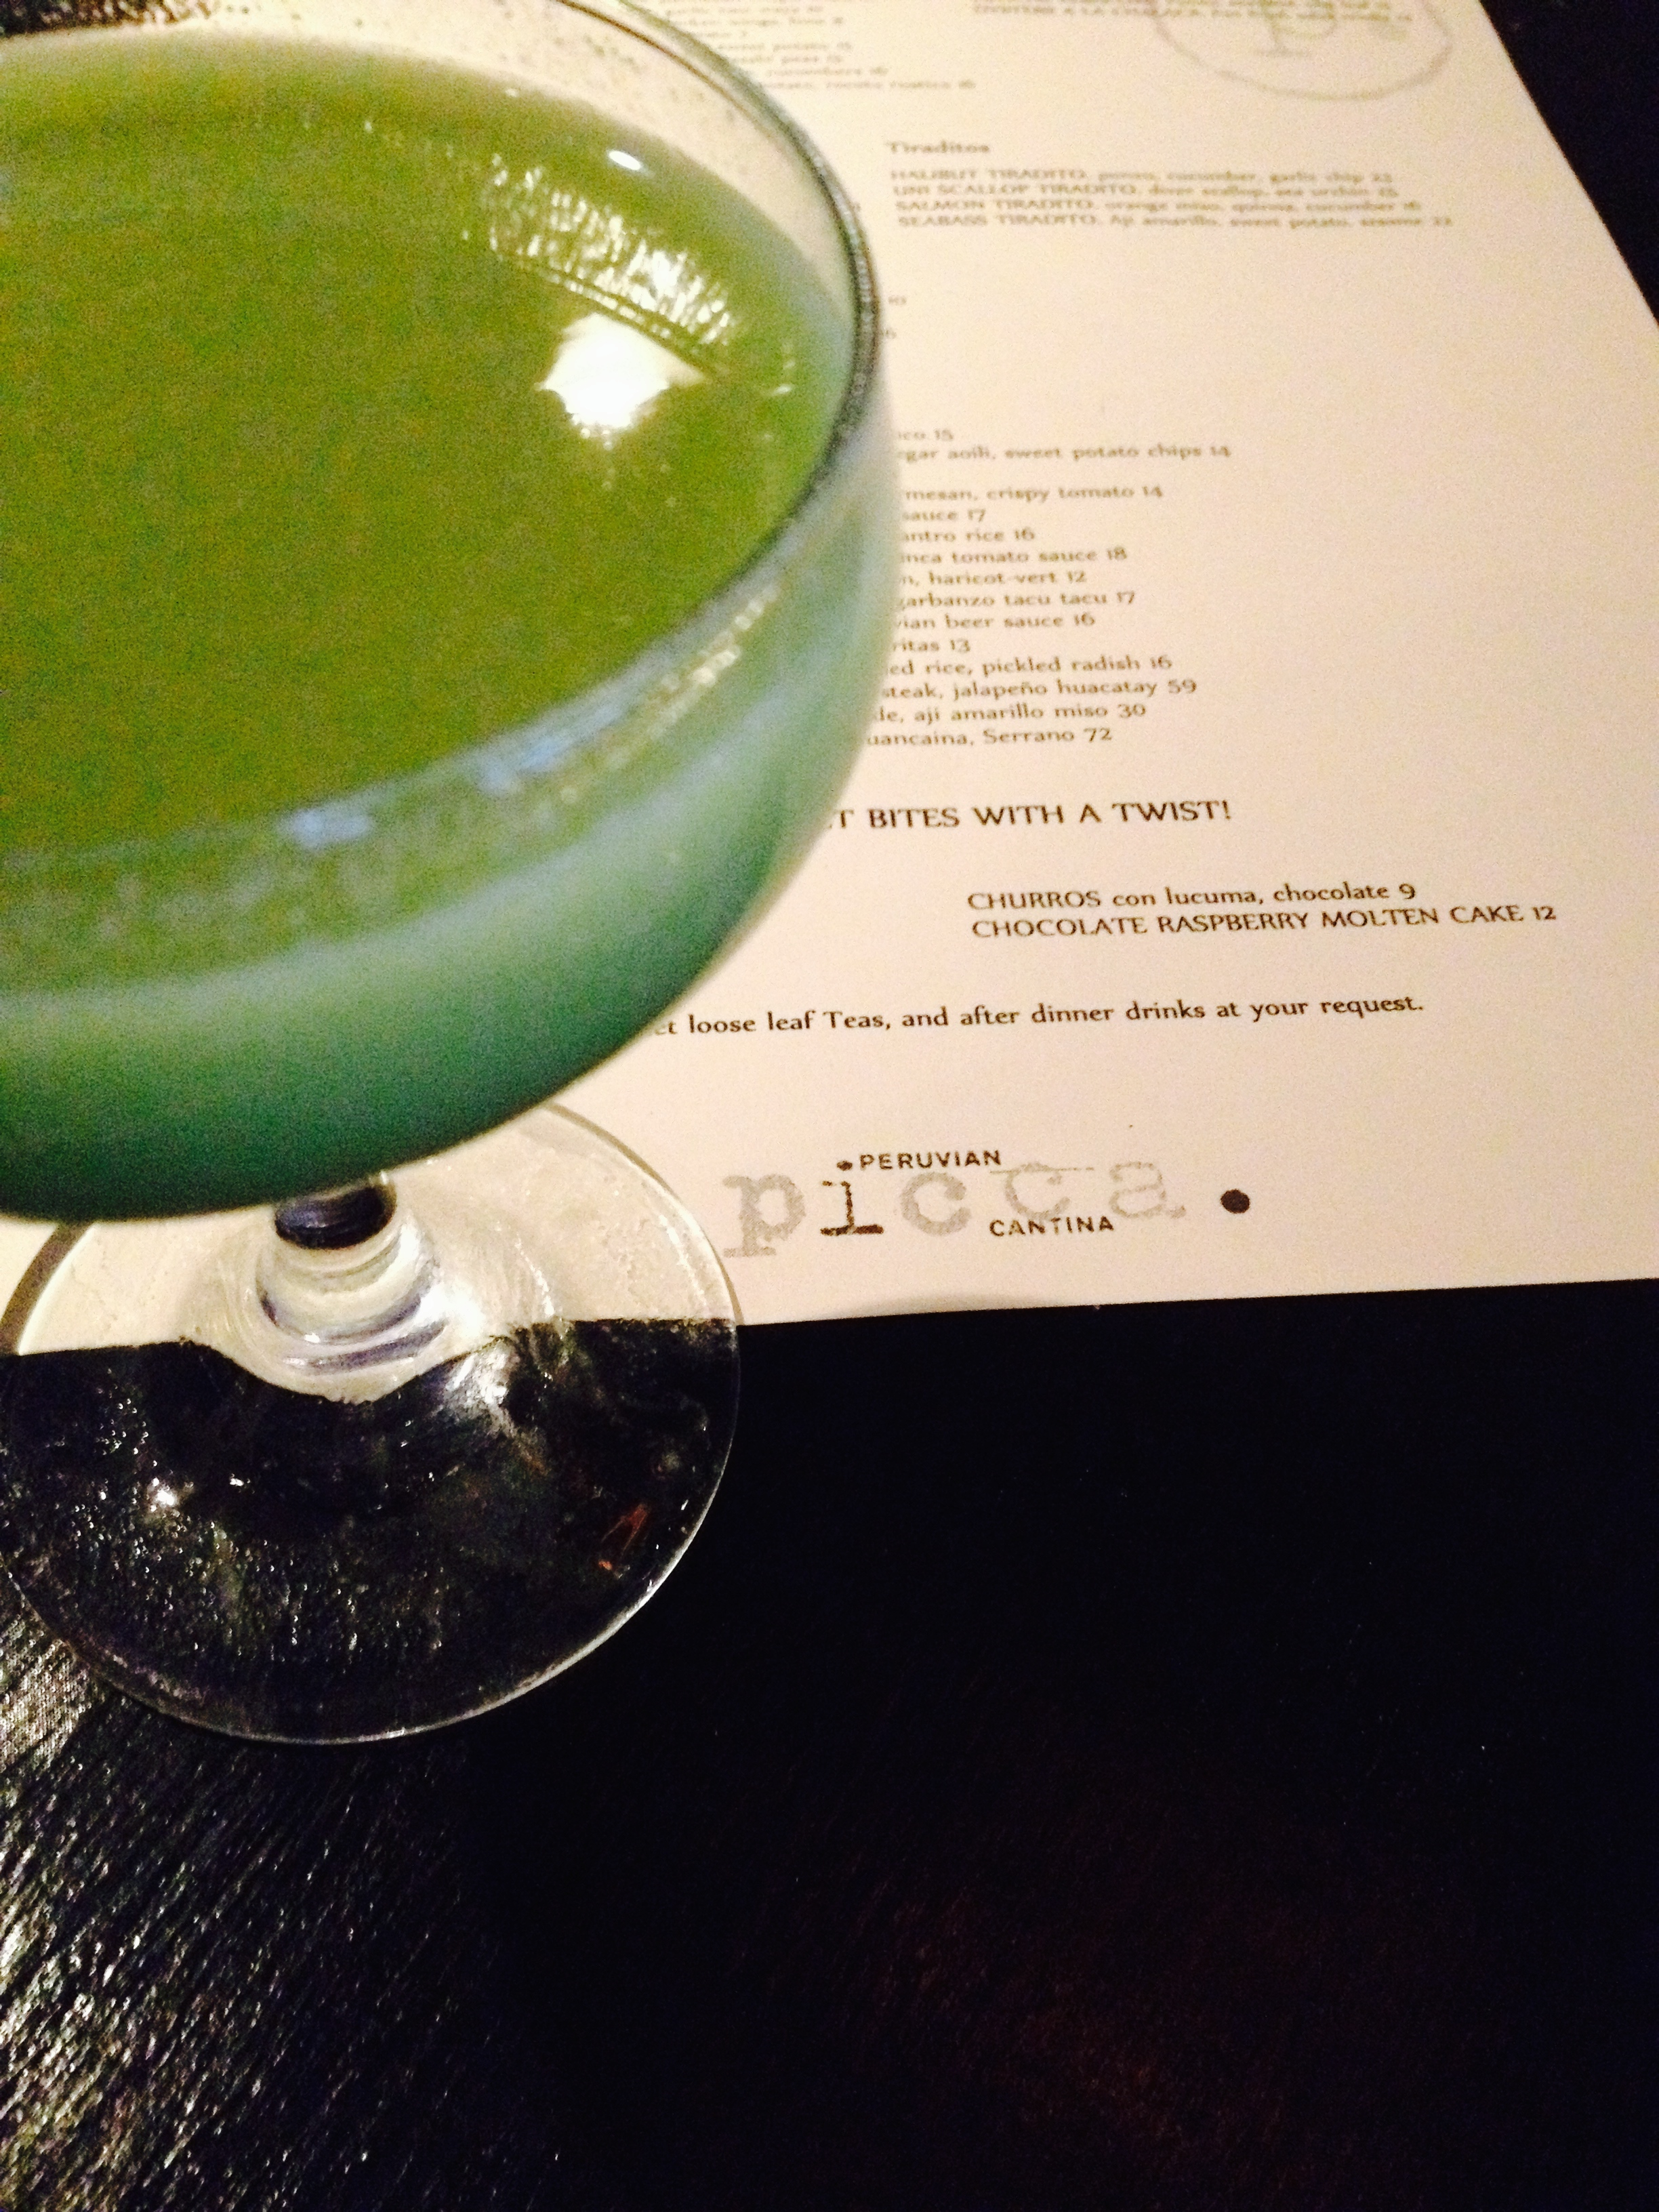 THE AVOCADO PROJECT COCKTAIL with 5 Island white rum, fresh avocado, ascorbic acid, fresh lime juice, agave nectar.